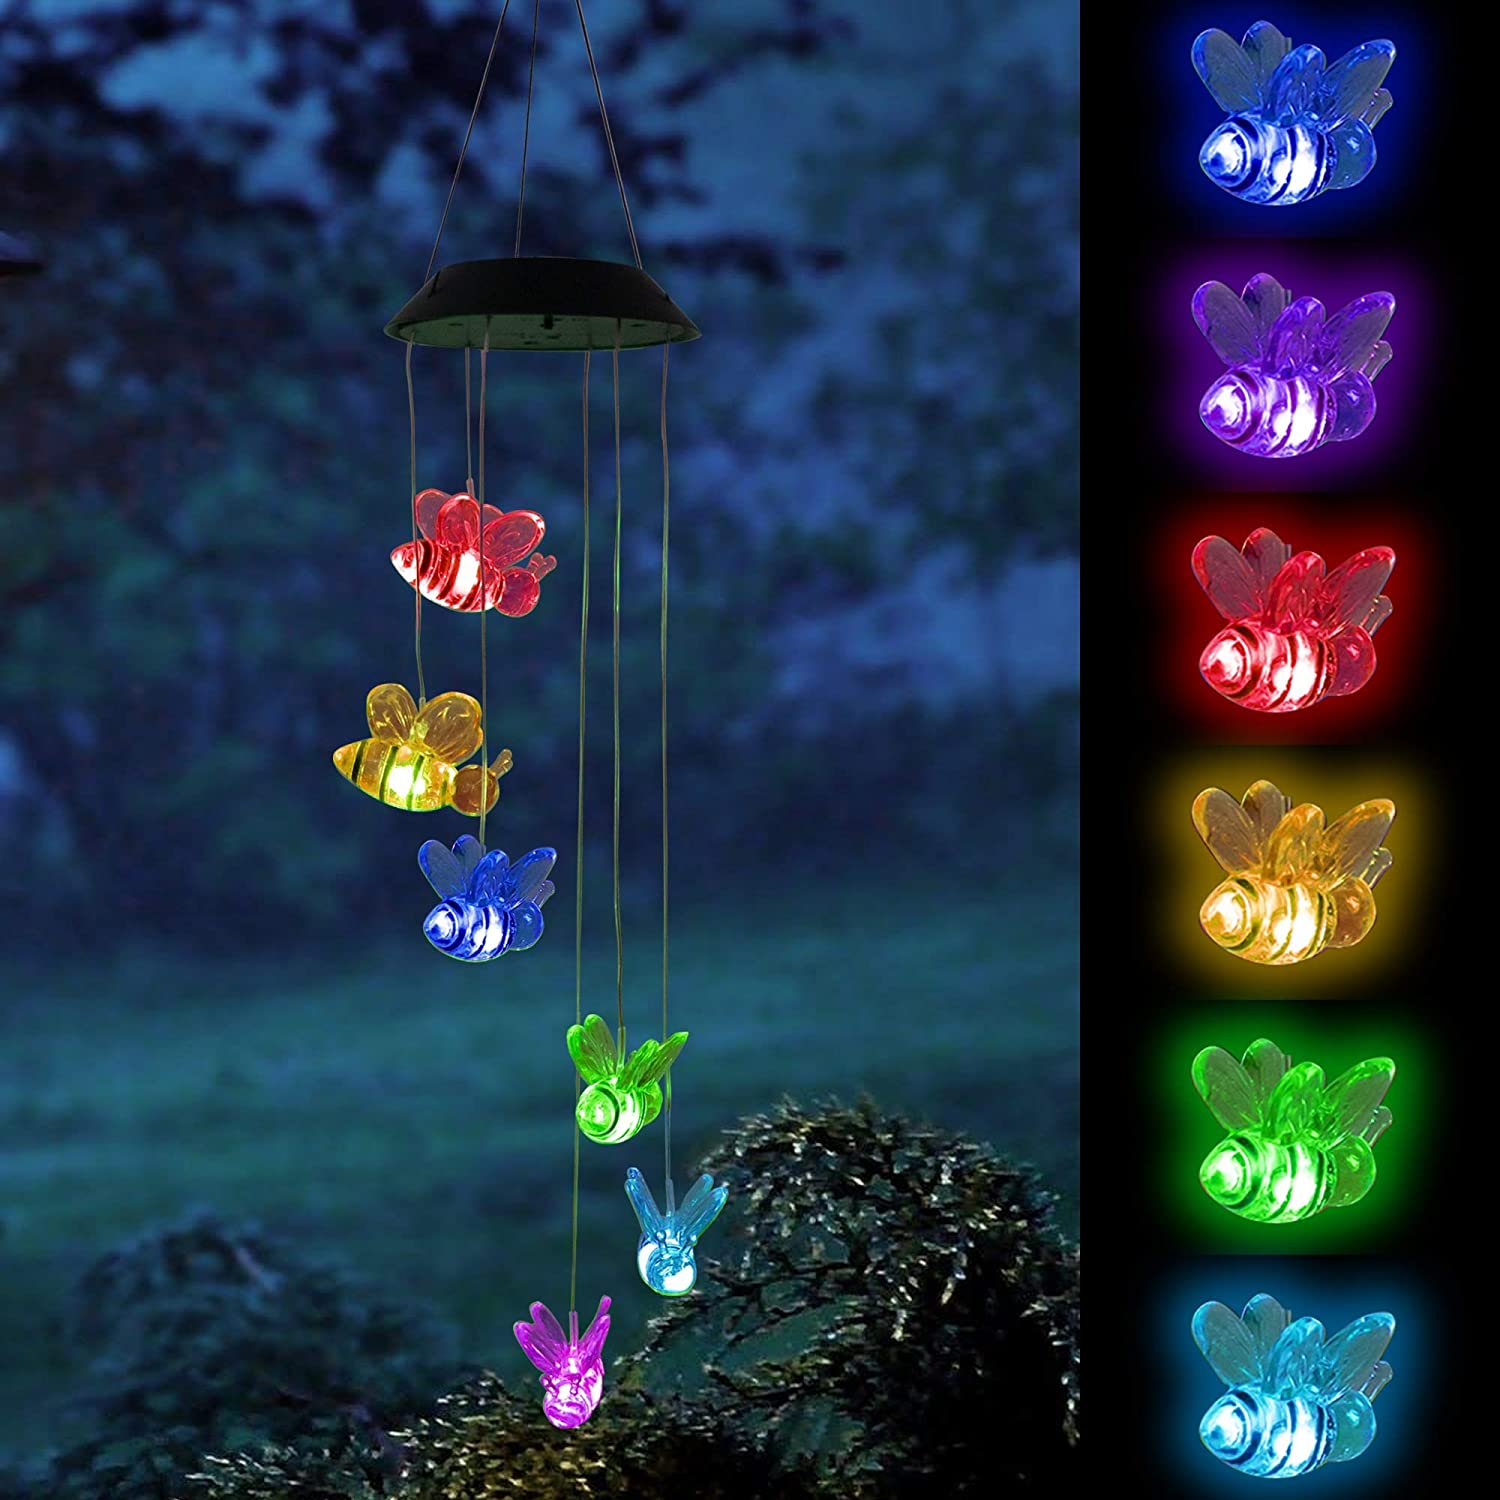 FUNPENY Solar Wind Chimes Bee, Solar Mobiles Hanging Color Changing LED Lights Waterproof Wind Chime for Garden Holiday Decoration, Friendship Wind Chimes for Outdoor, Gift for mom